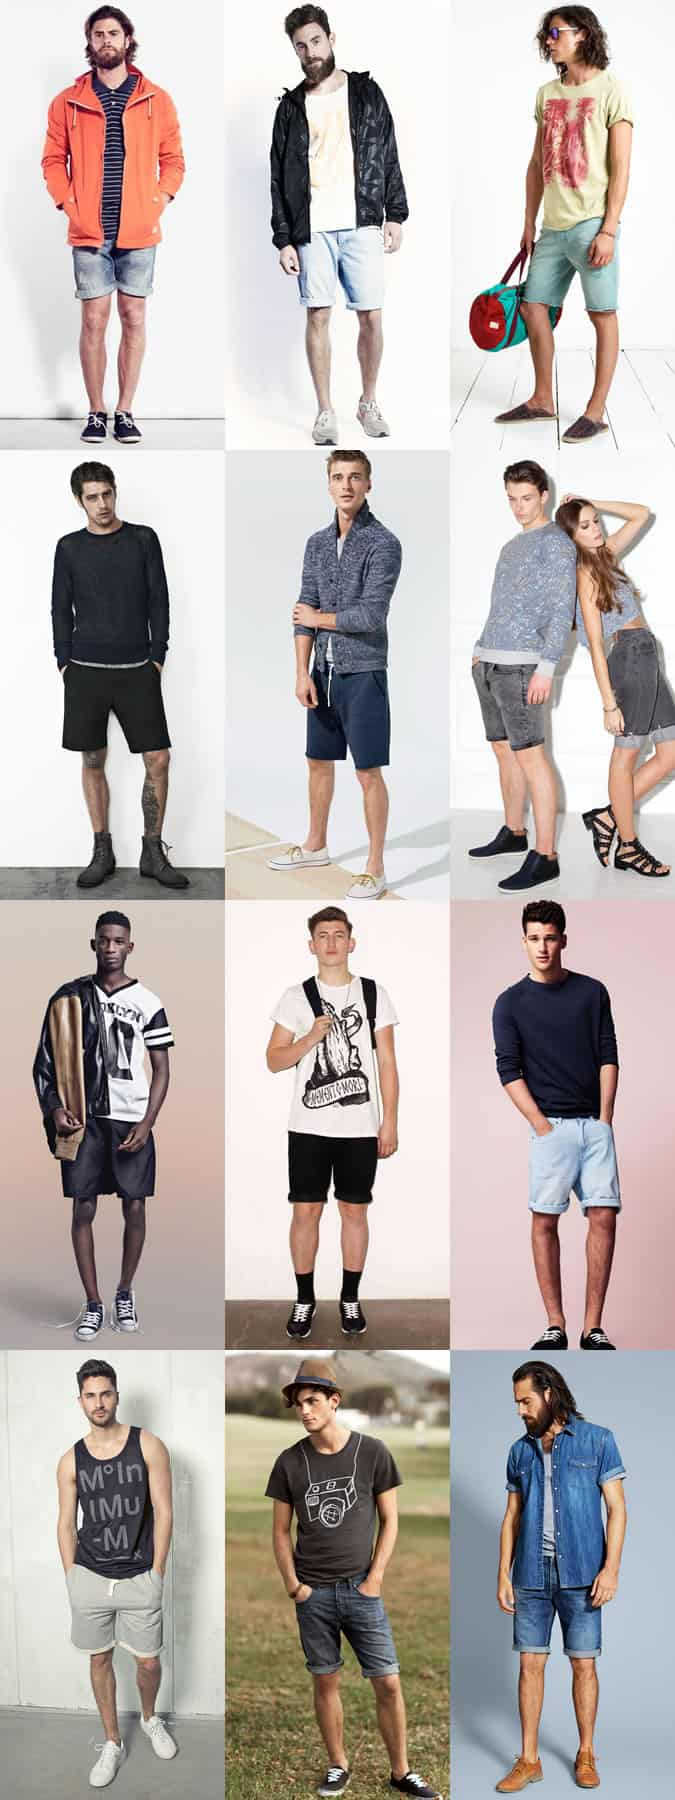 Men's Festival Outfit Inspiration - Denim Shorts and Sweat Shorts Lookbook